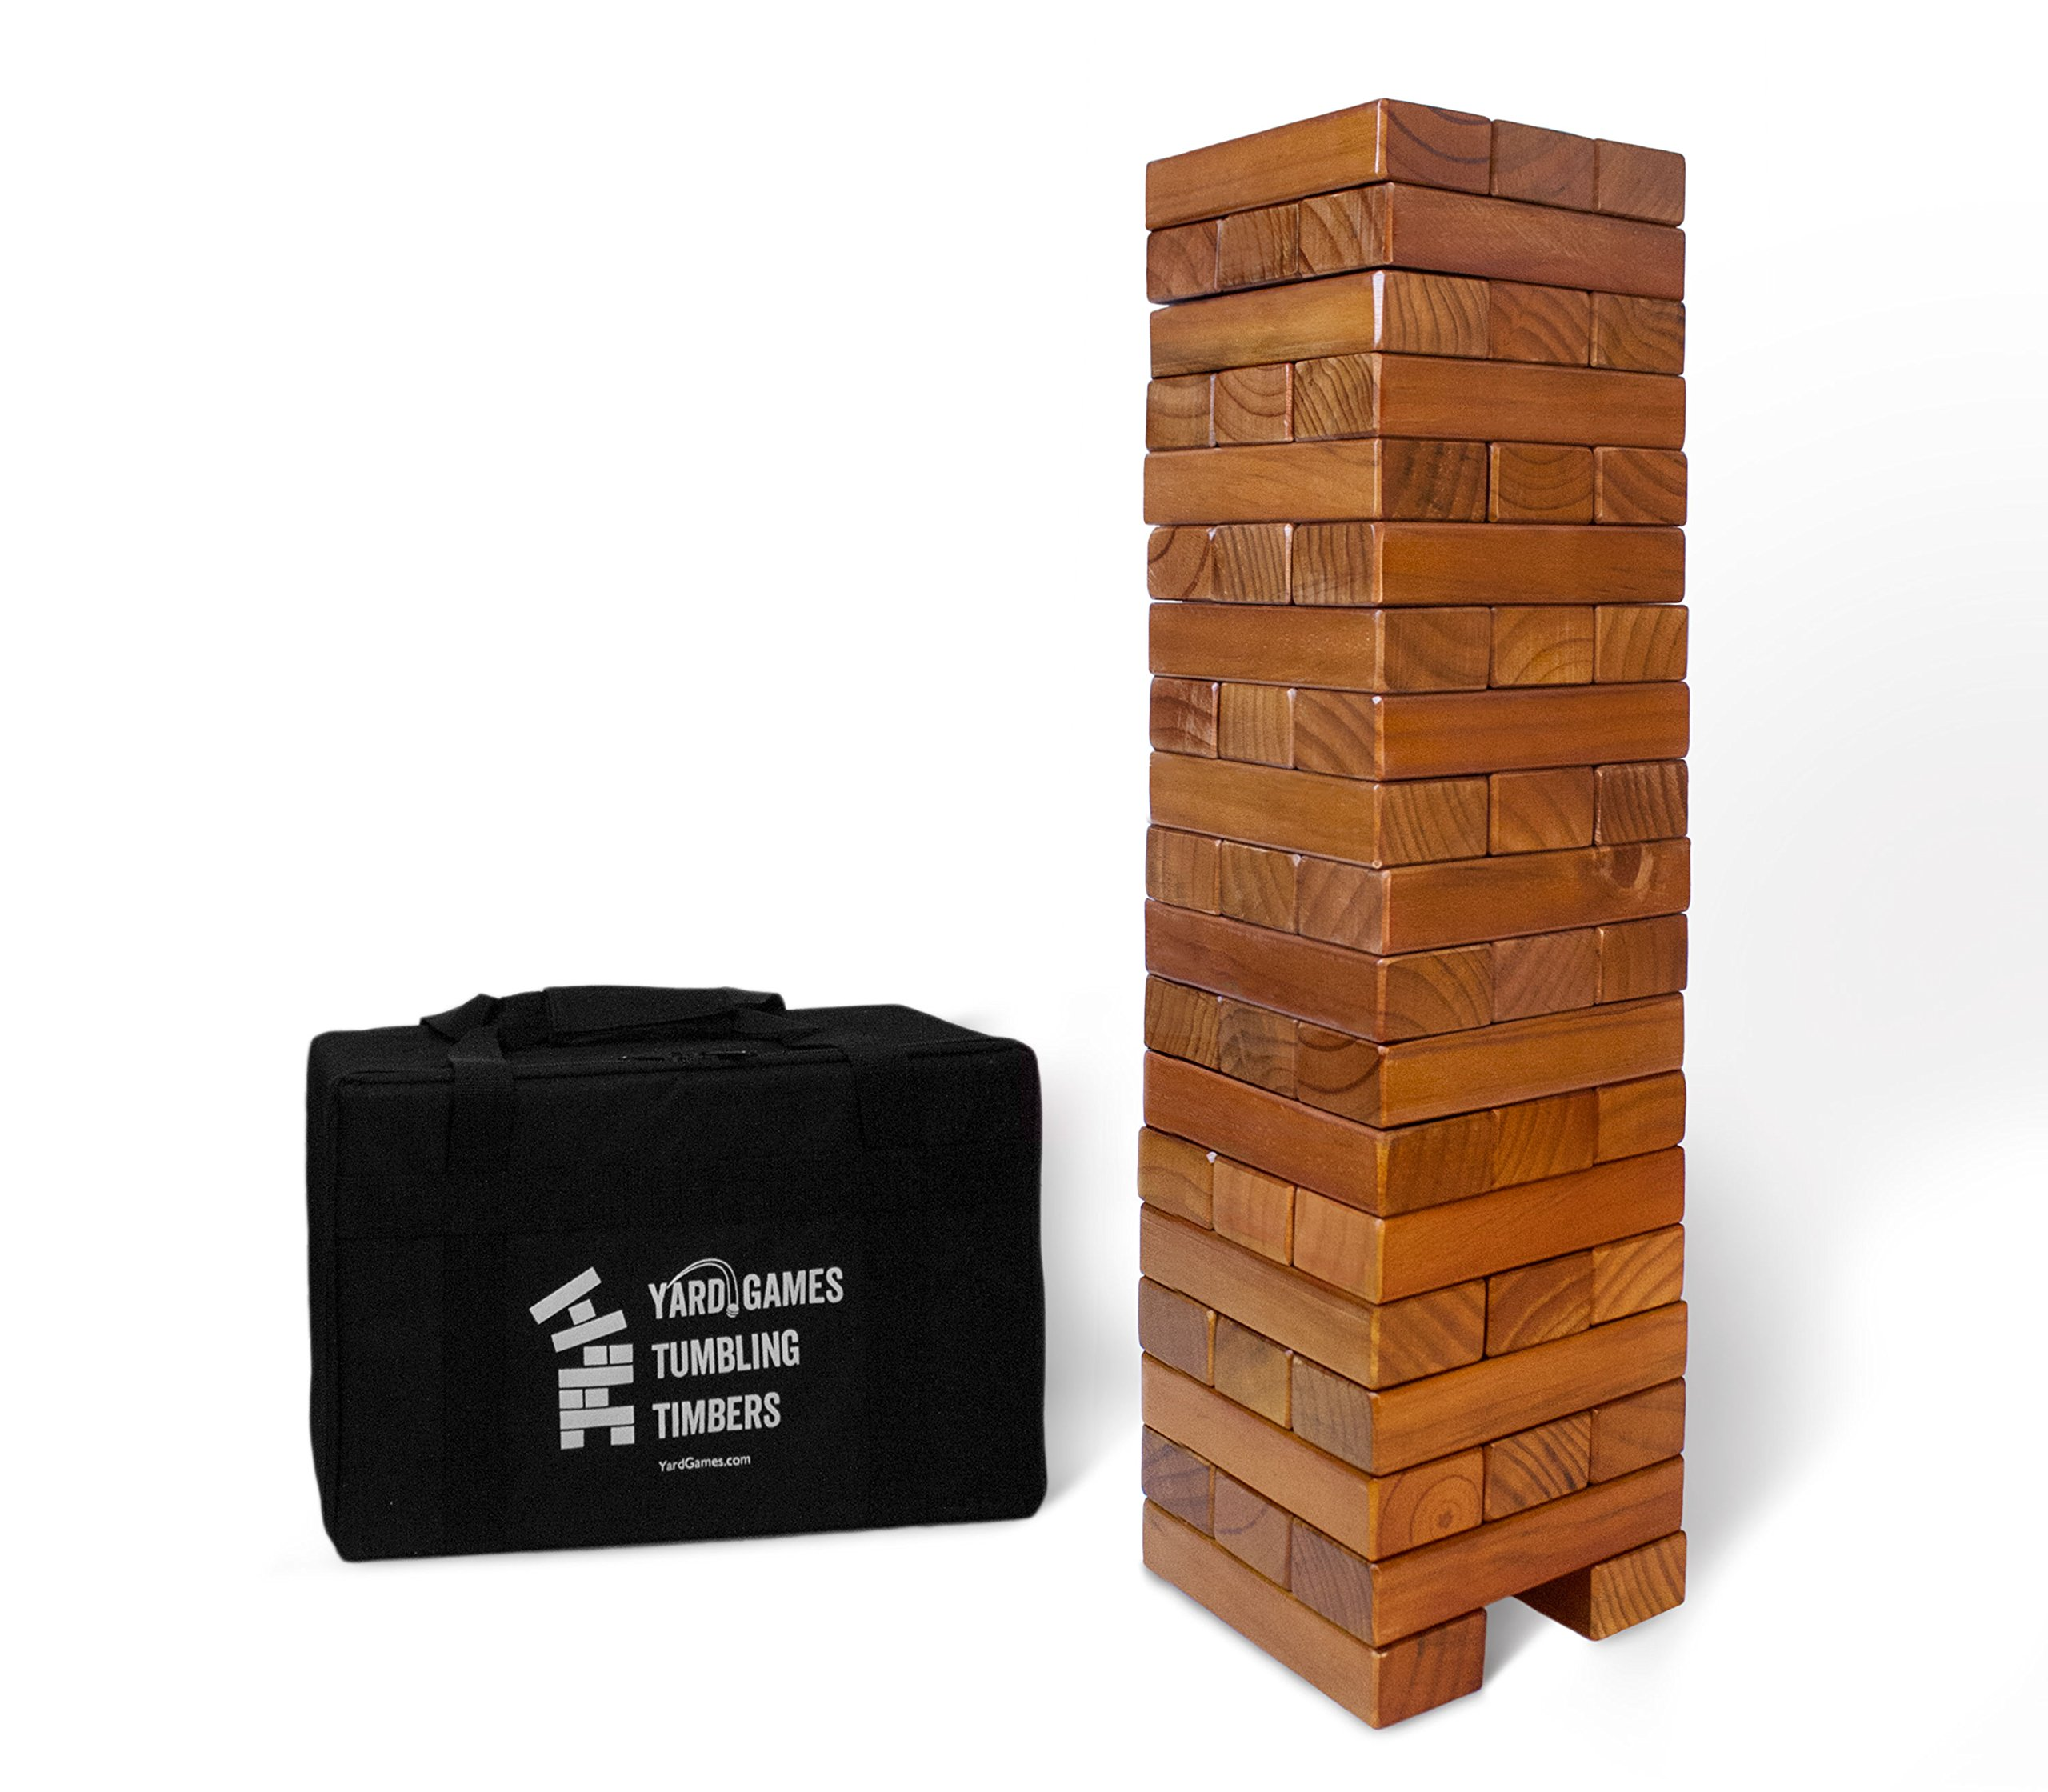 Giant Tumbling Timbers Stained and Finished Set by Yard Games